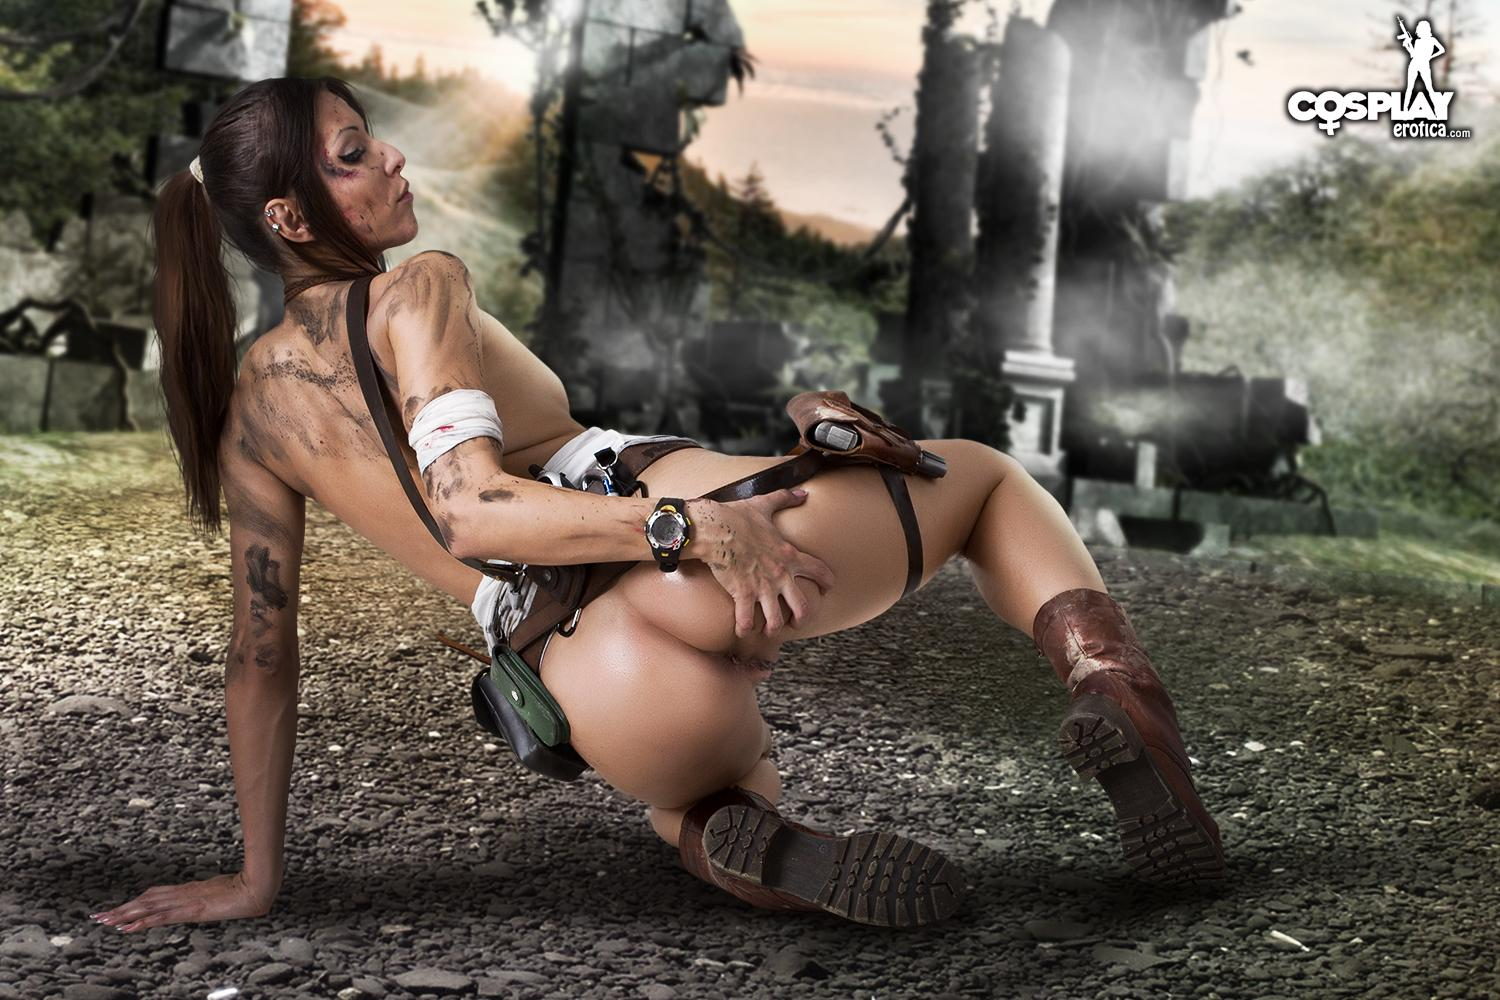 Lara croft erotic porn hentai photo